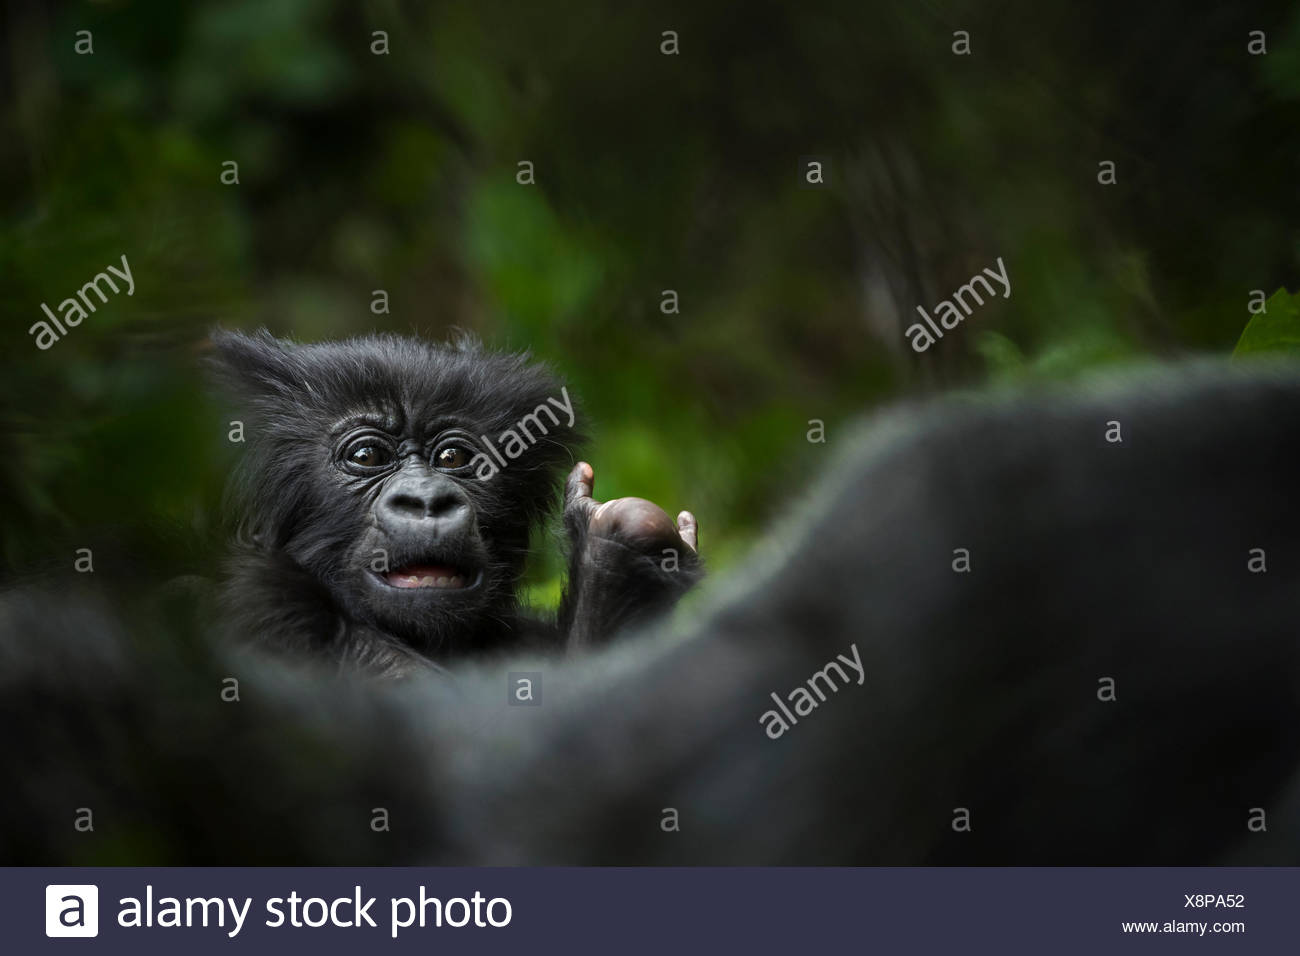 A mountain gorilla young in Volcanoes National Park. - Stock Image